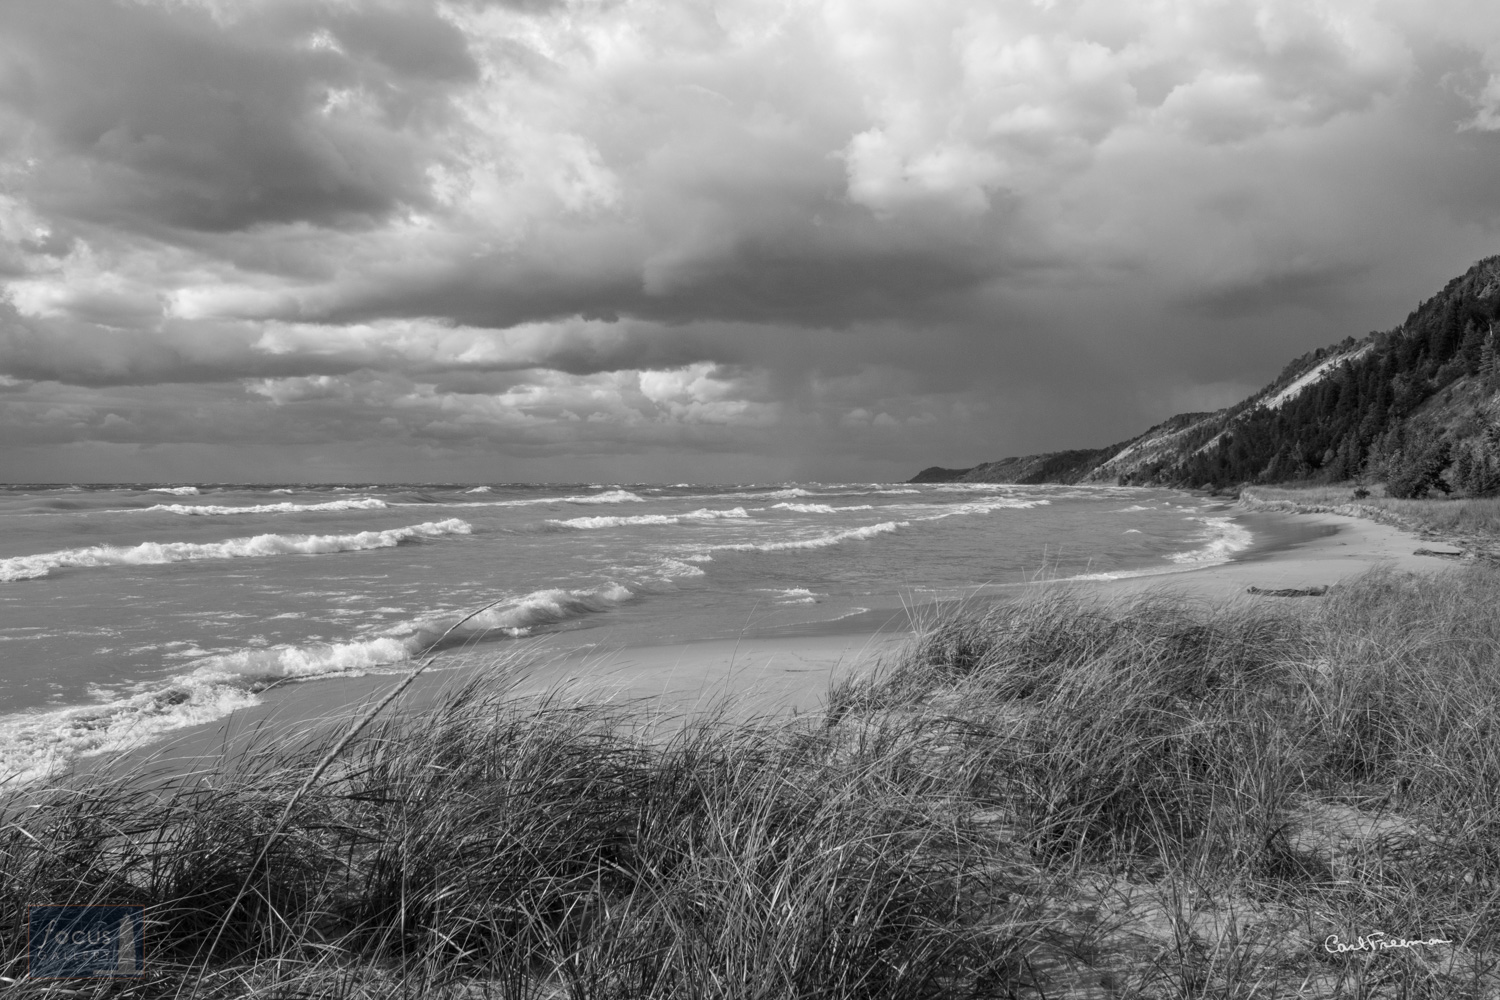 Photo © Carl Freeman Windy day on the beach at Green Point Dunes, South of Elberta, looking North toward Frankfort.  This image...